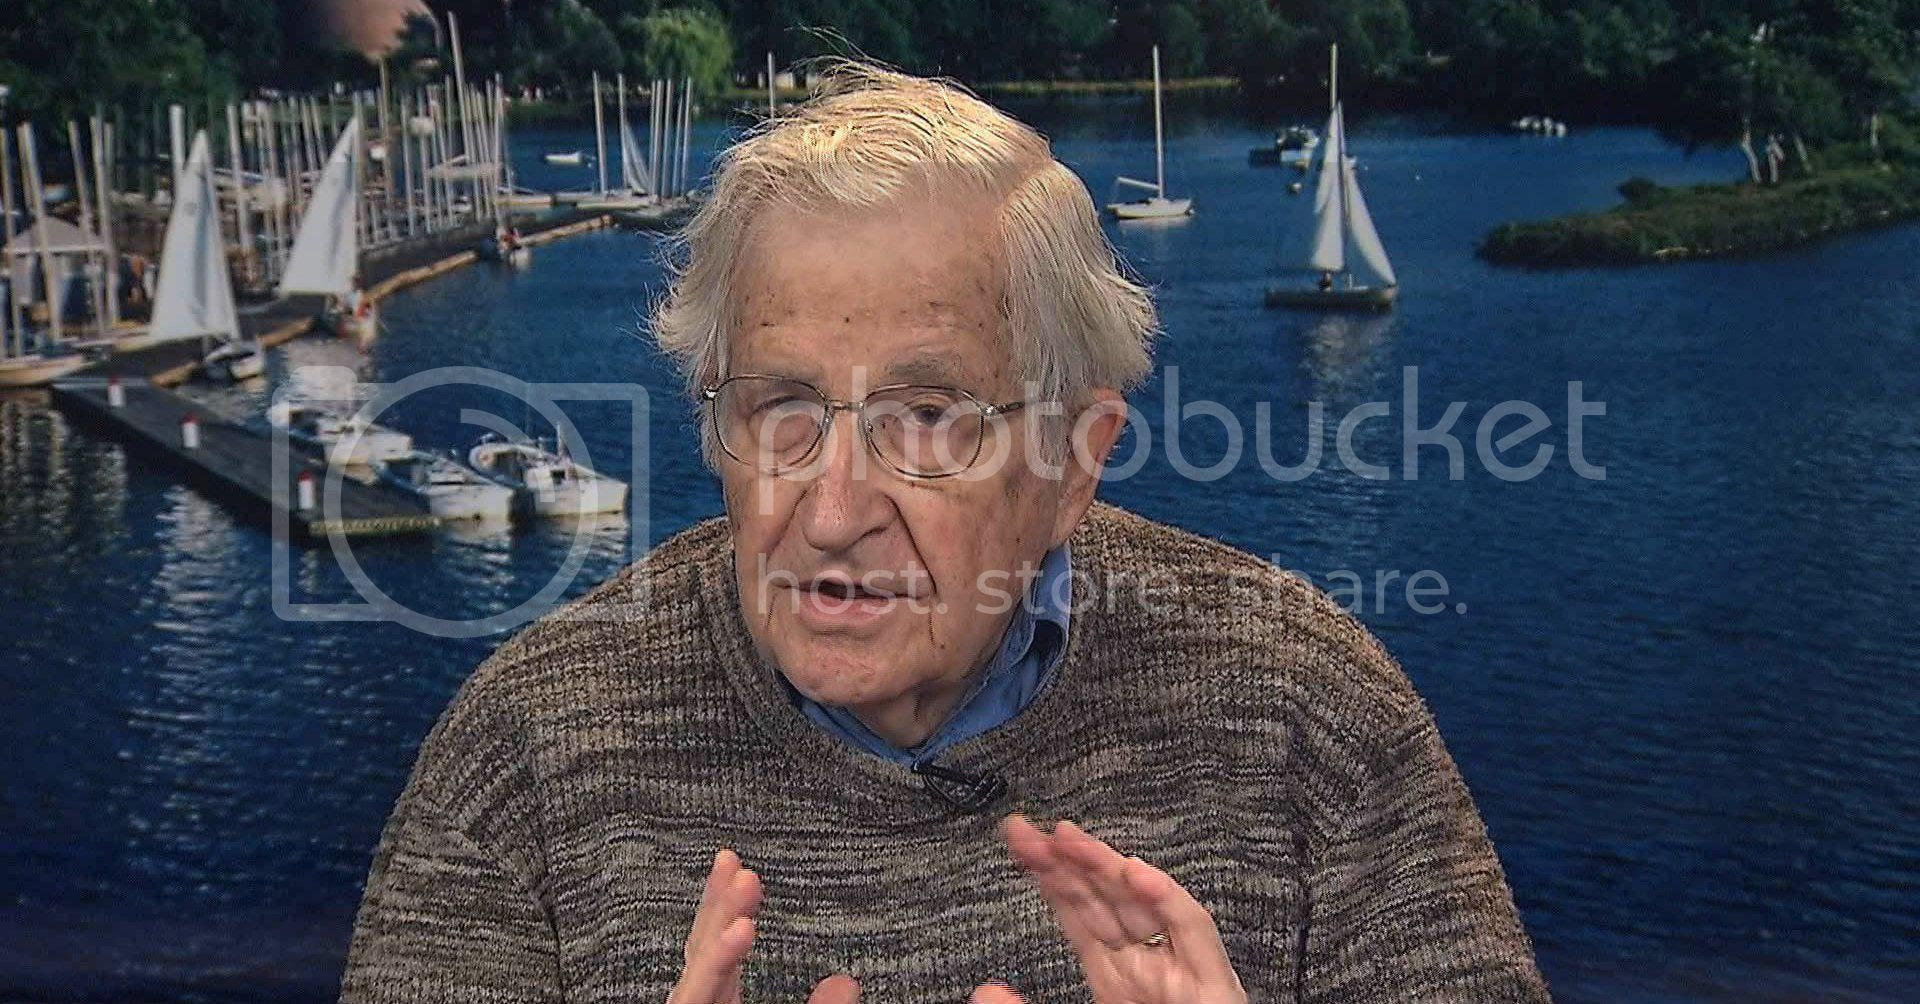 Noam Chomsky photo proxy 3_zps5y4popov.jpg